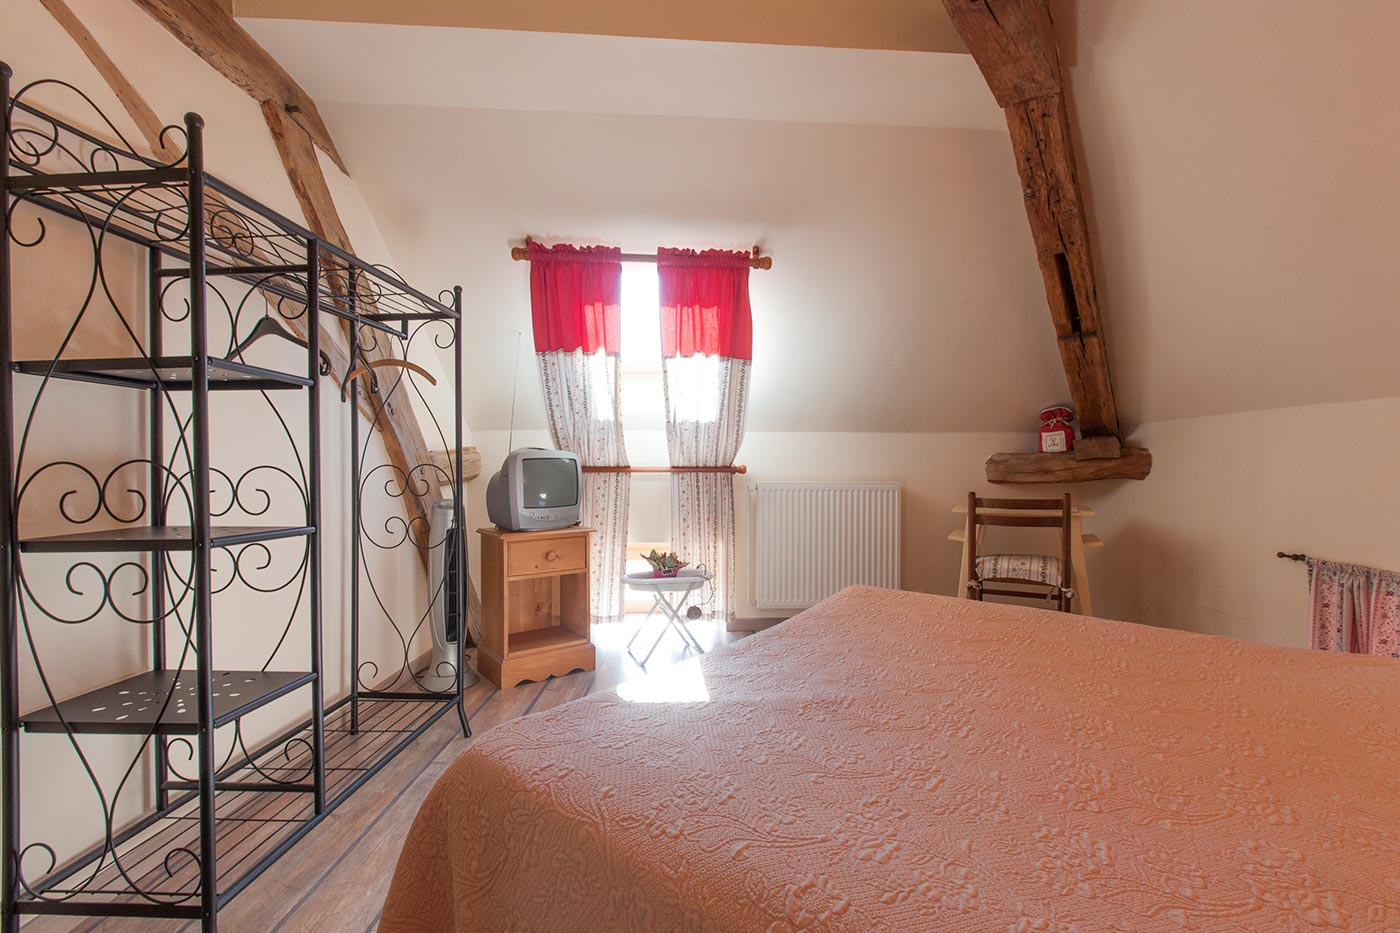 Chambre d 39 h tes beaune 4 chambres d 39 h tes quelques for Beaune chambre hote